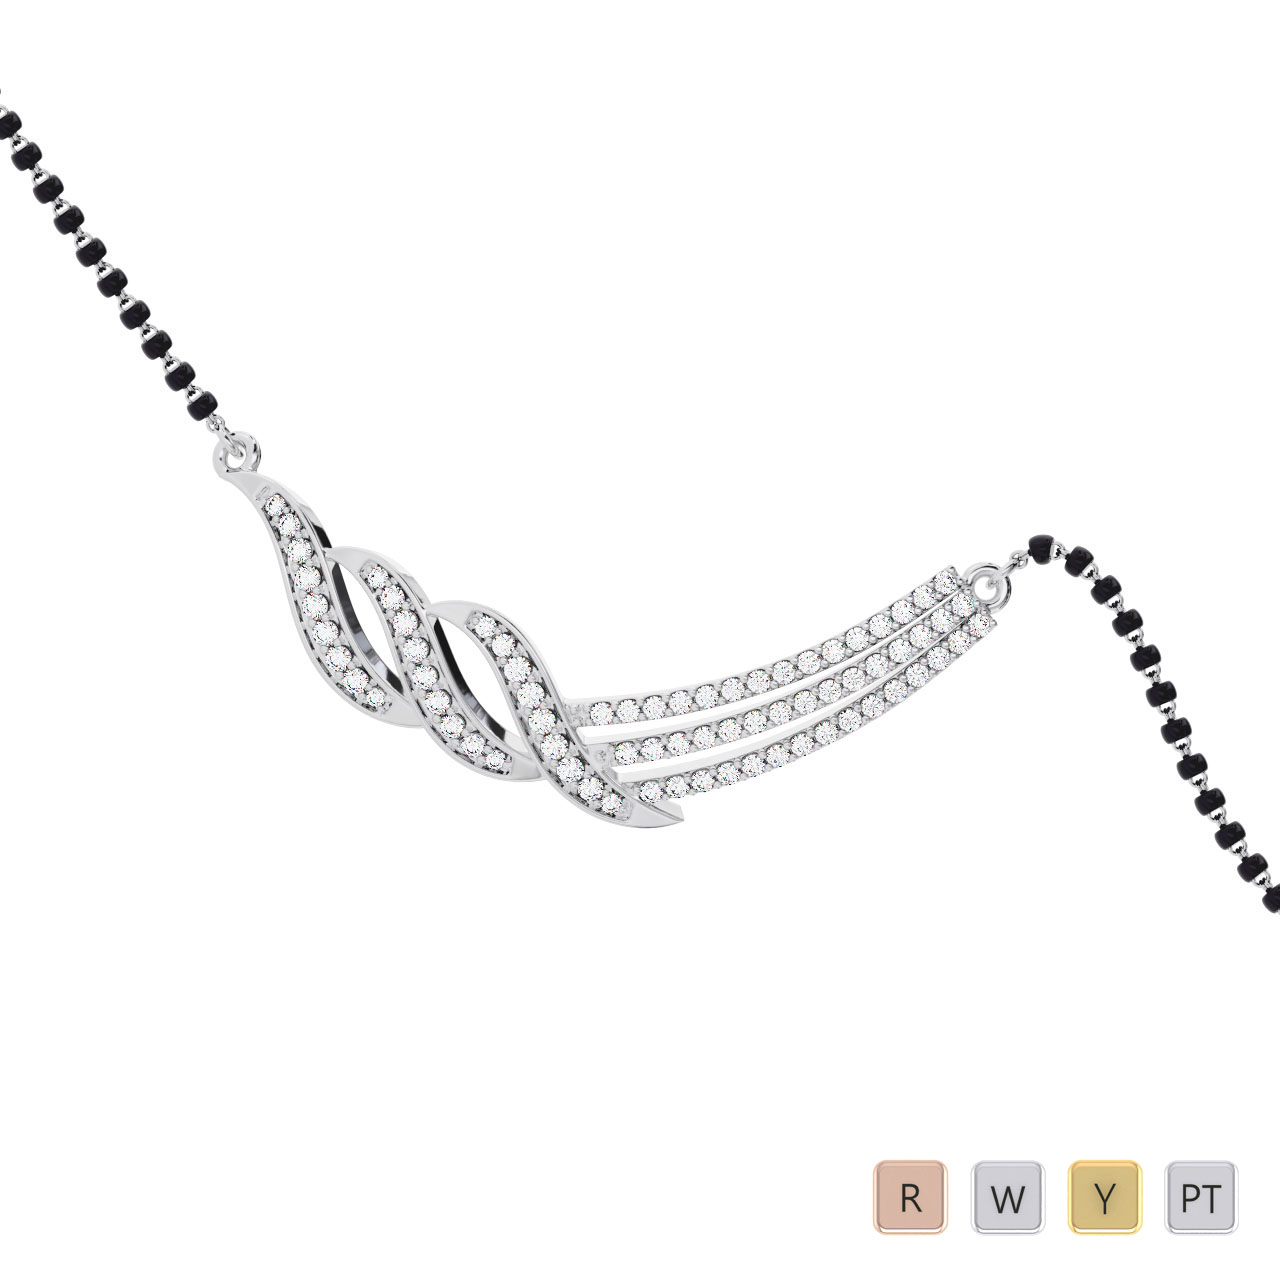 Gold / Platinum Round Cut Diamond Mangalsutra TZ0341